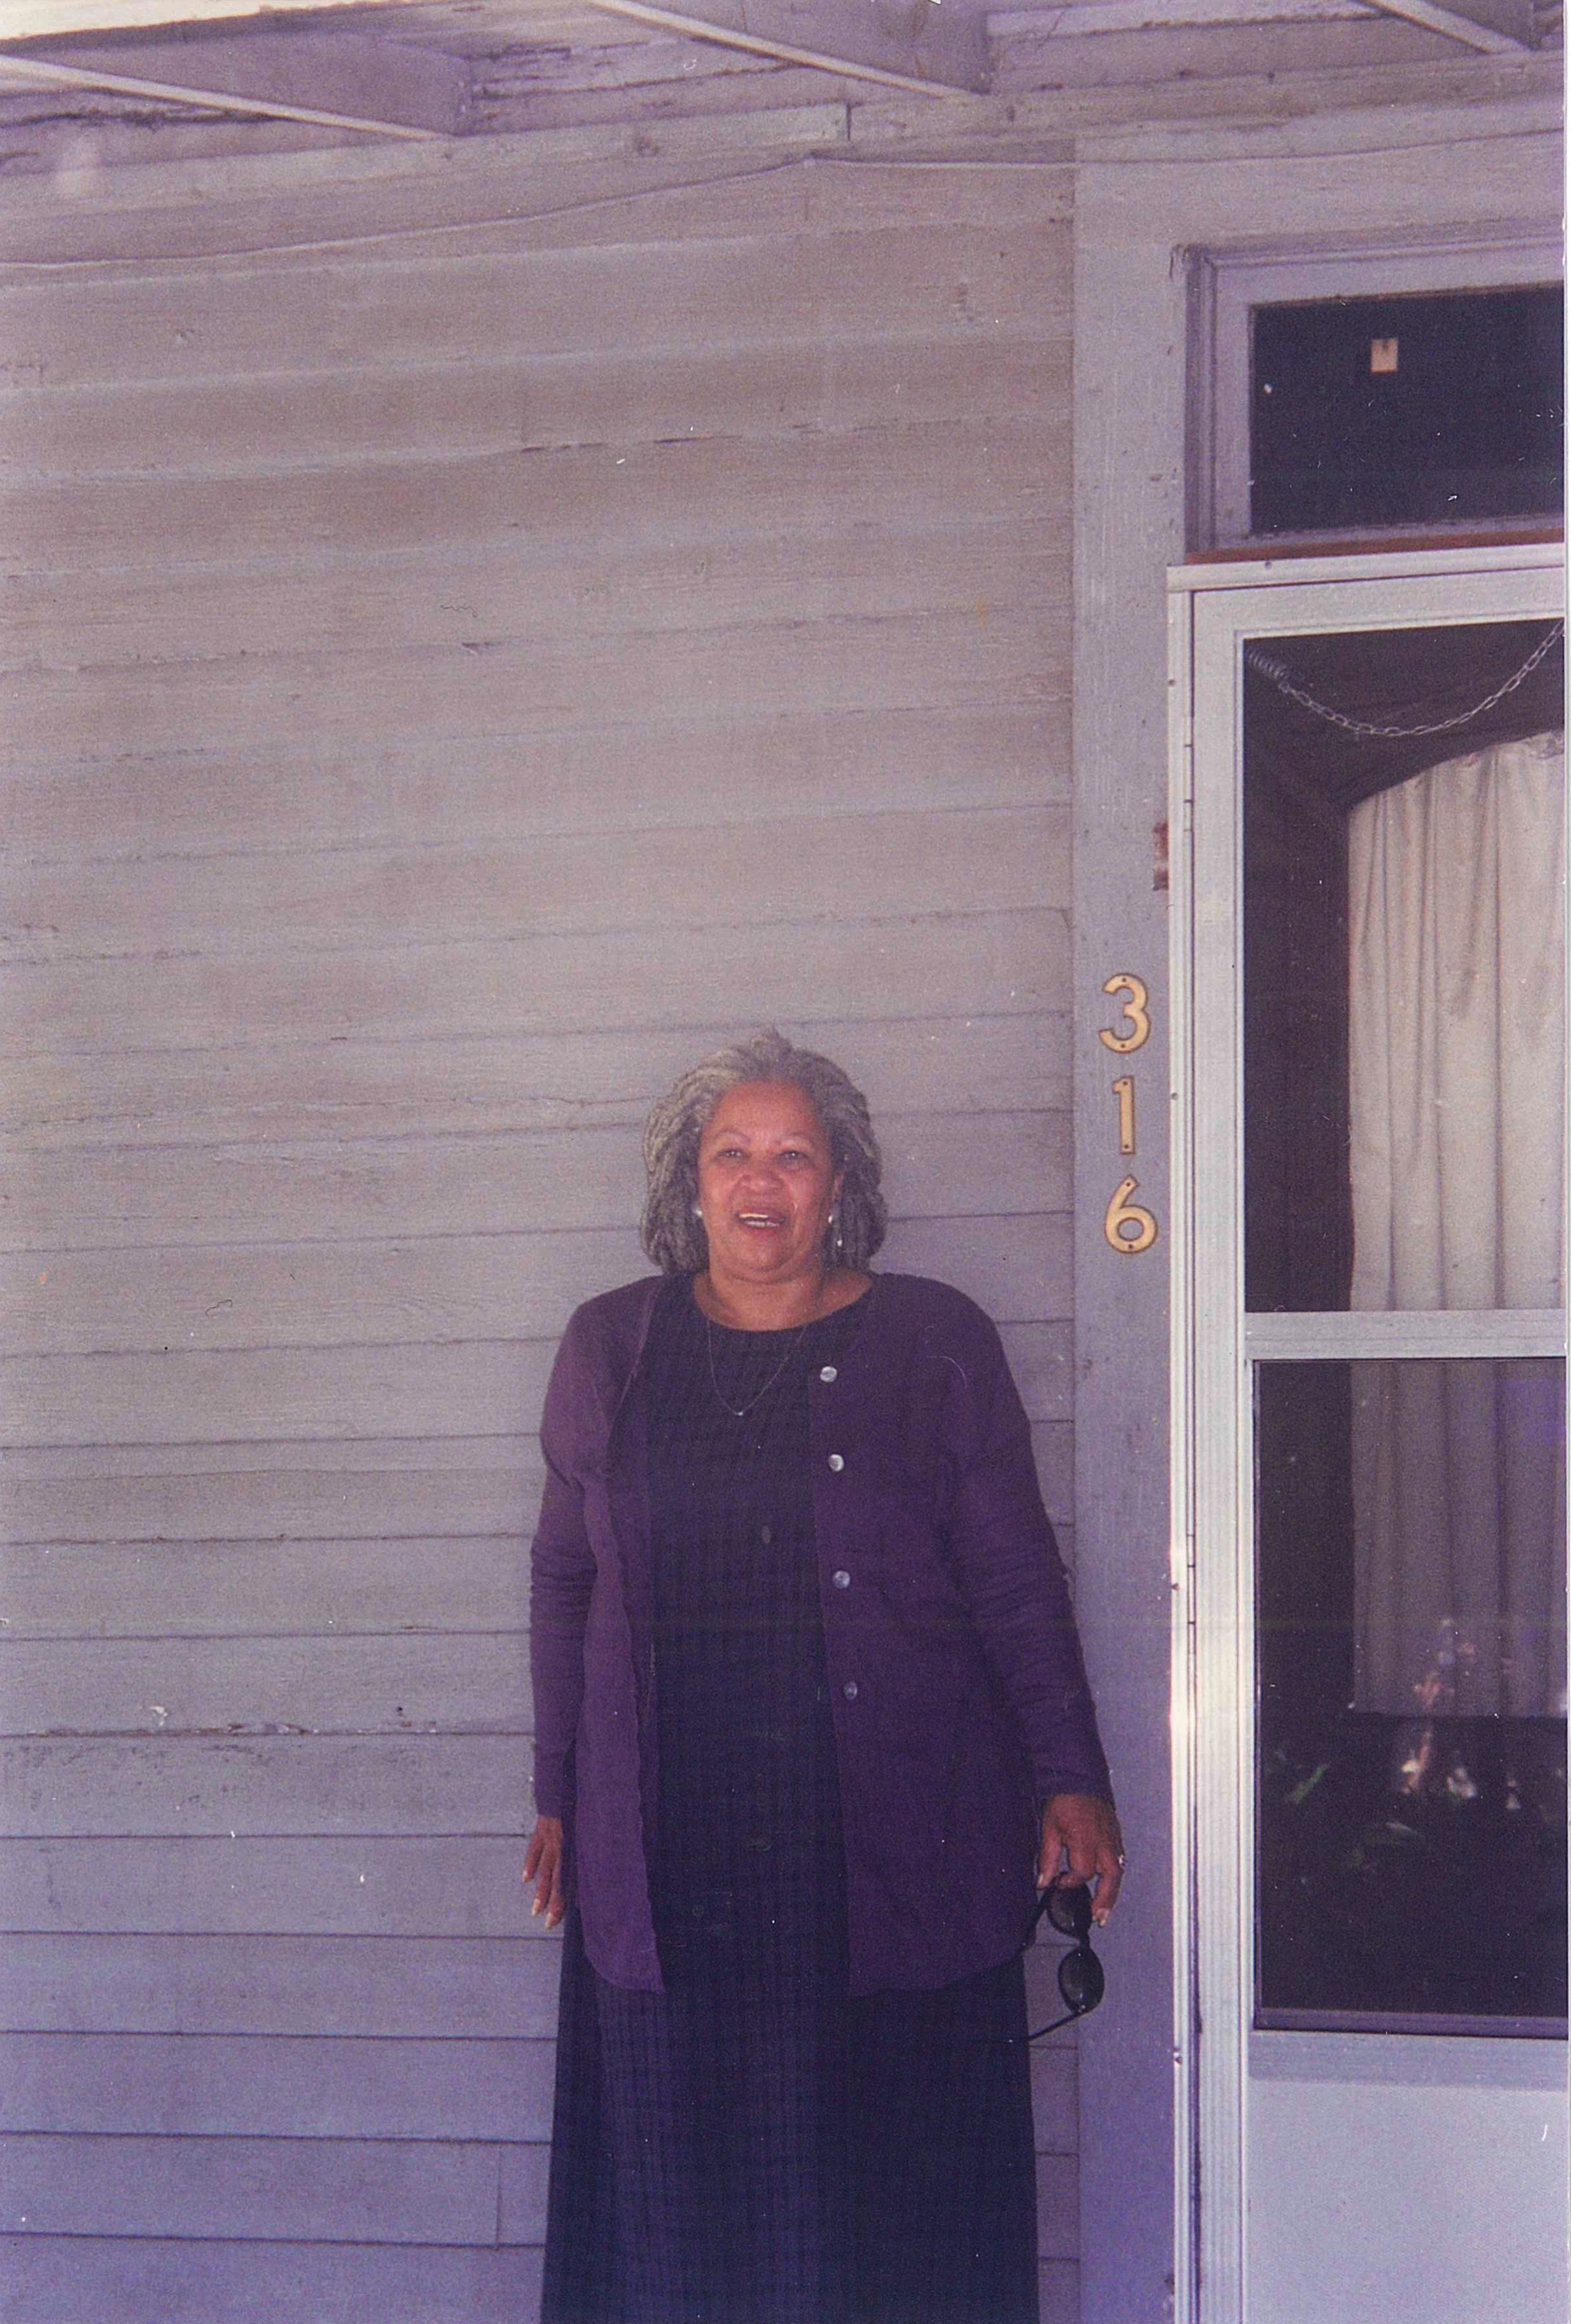 Novelist Toni Morrison, in 1998, outside the house in Cartersville where her father grew up. Credit: Pearl McHaney